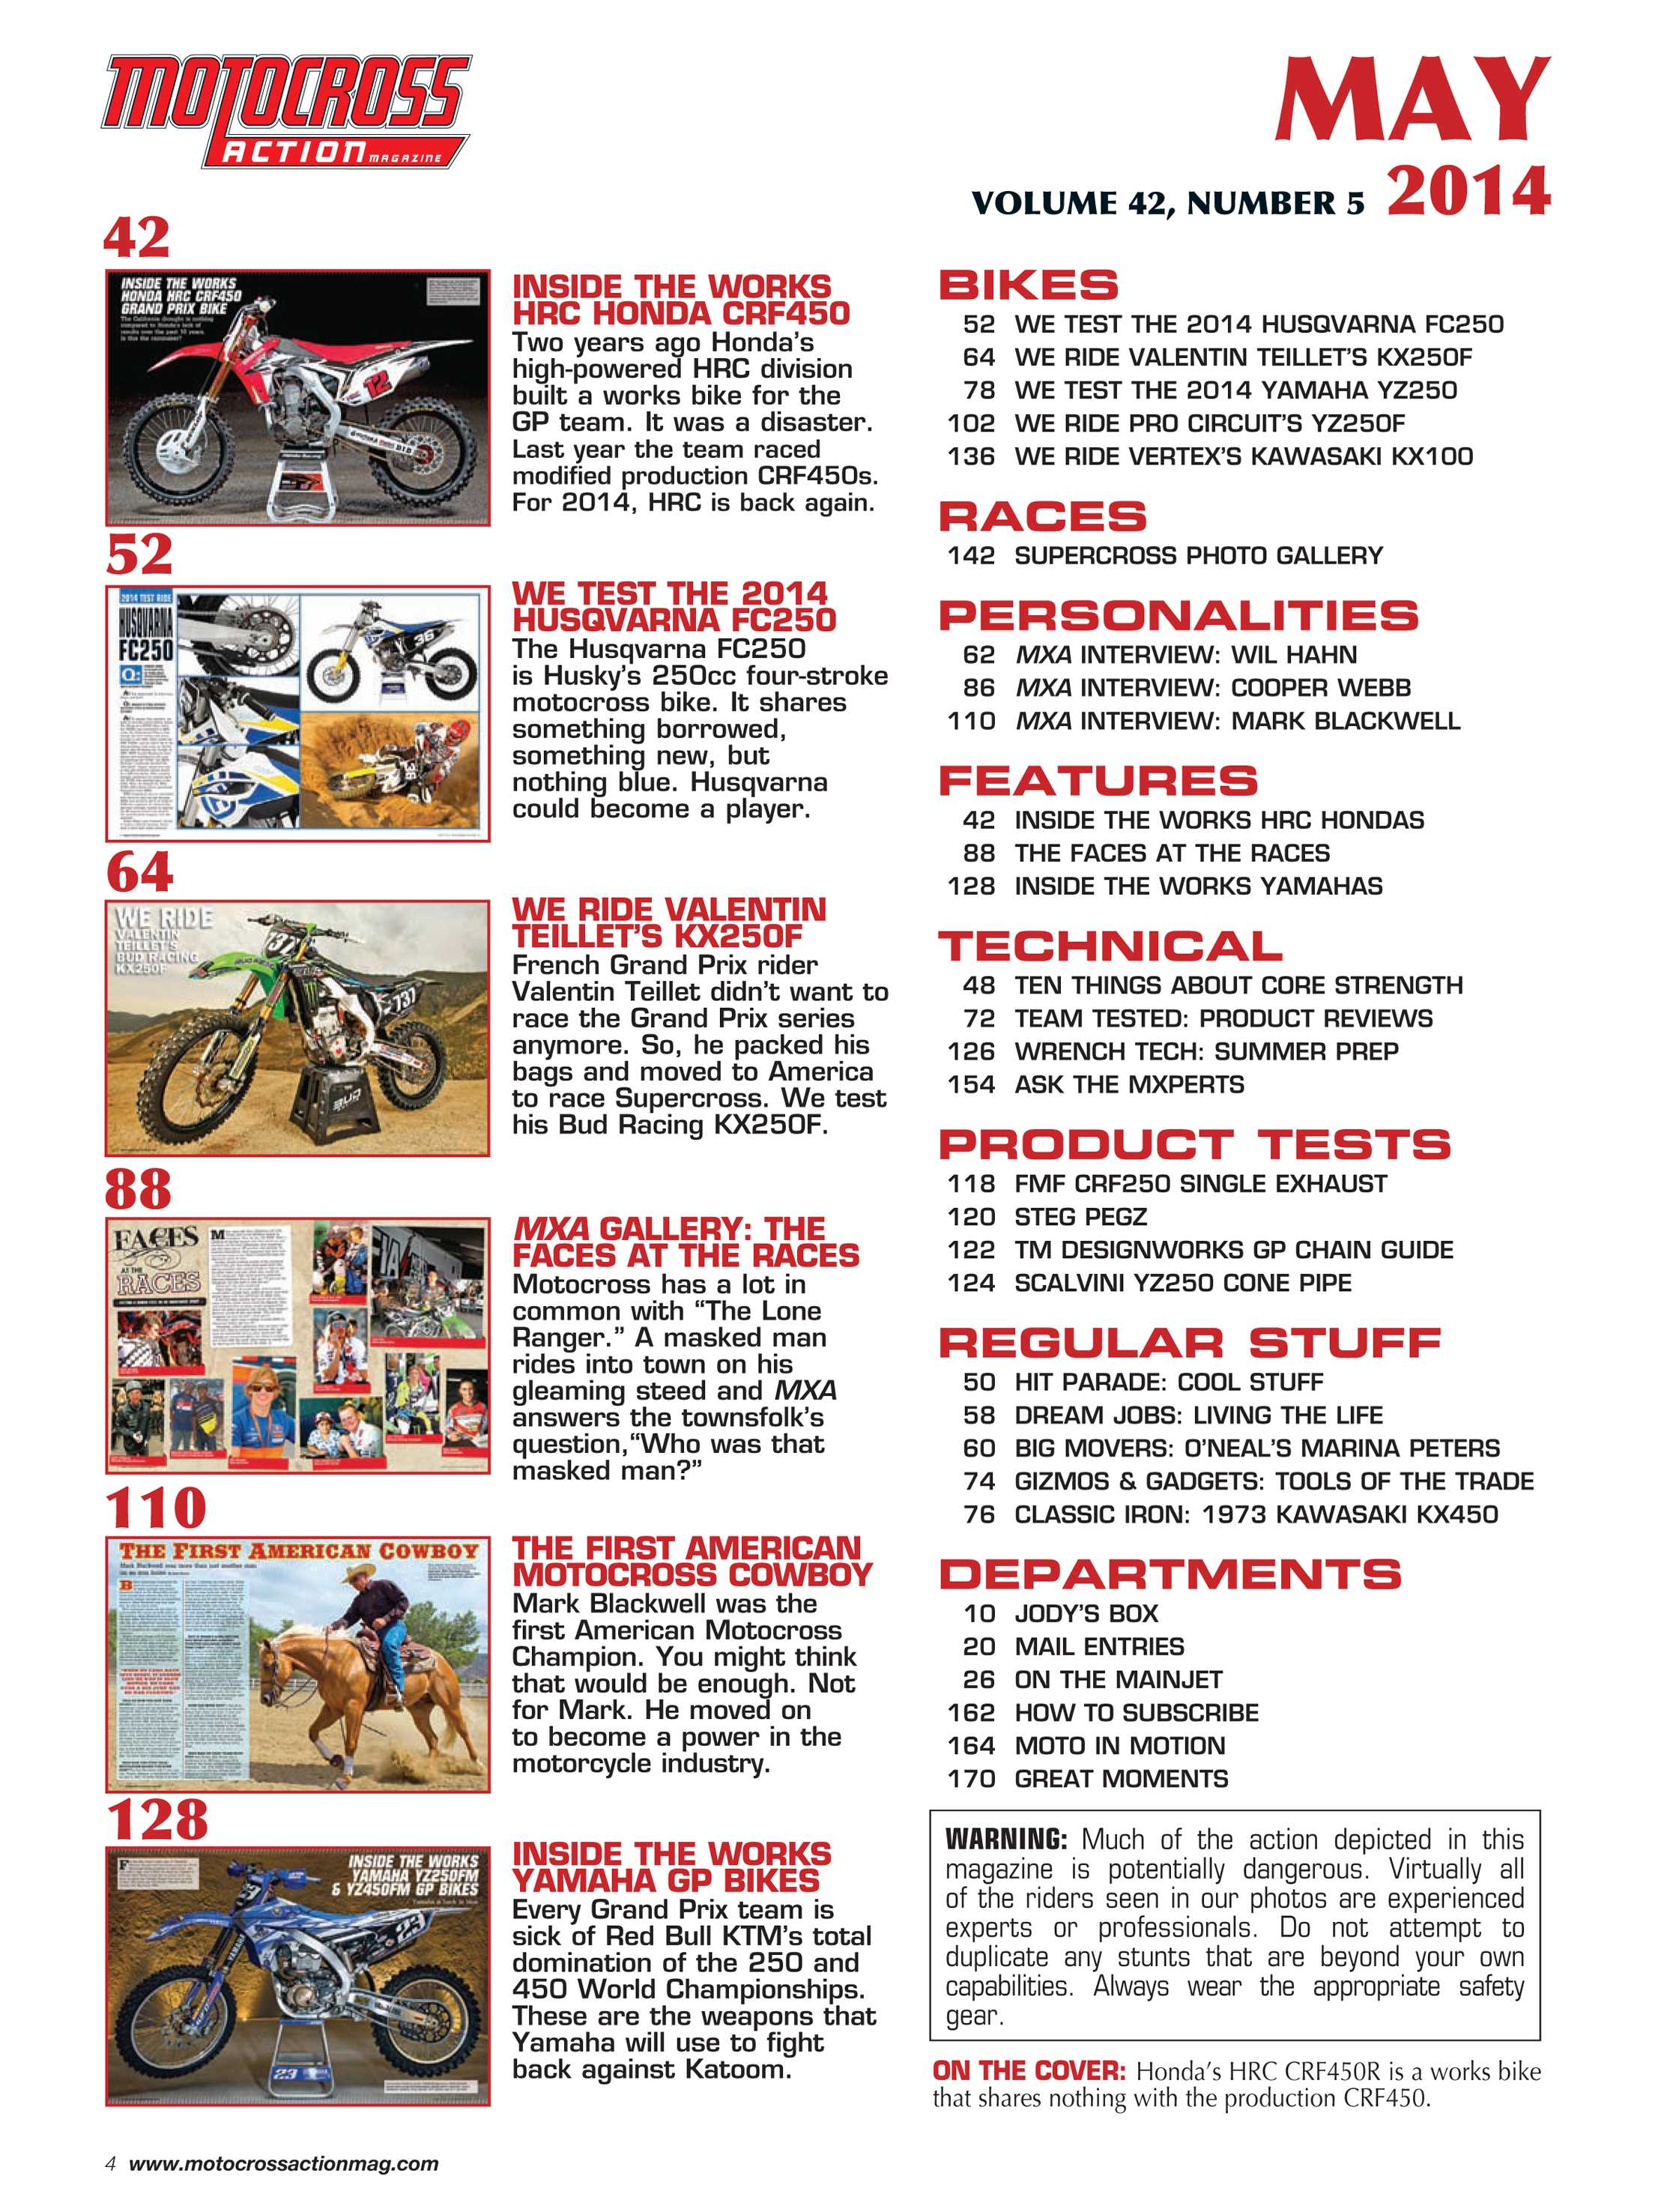 206131afc Motocross Action Magazine - May 2014 - page 4